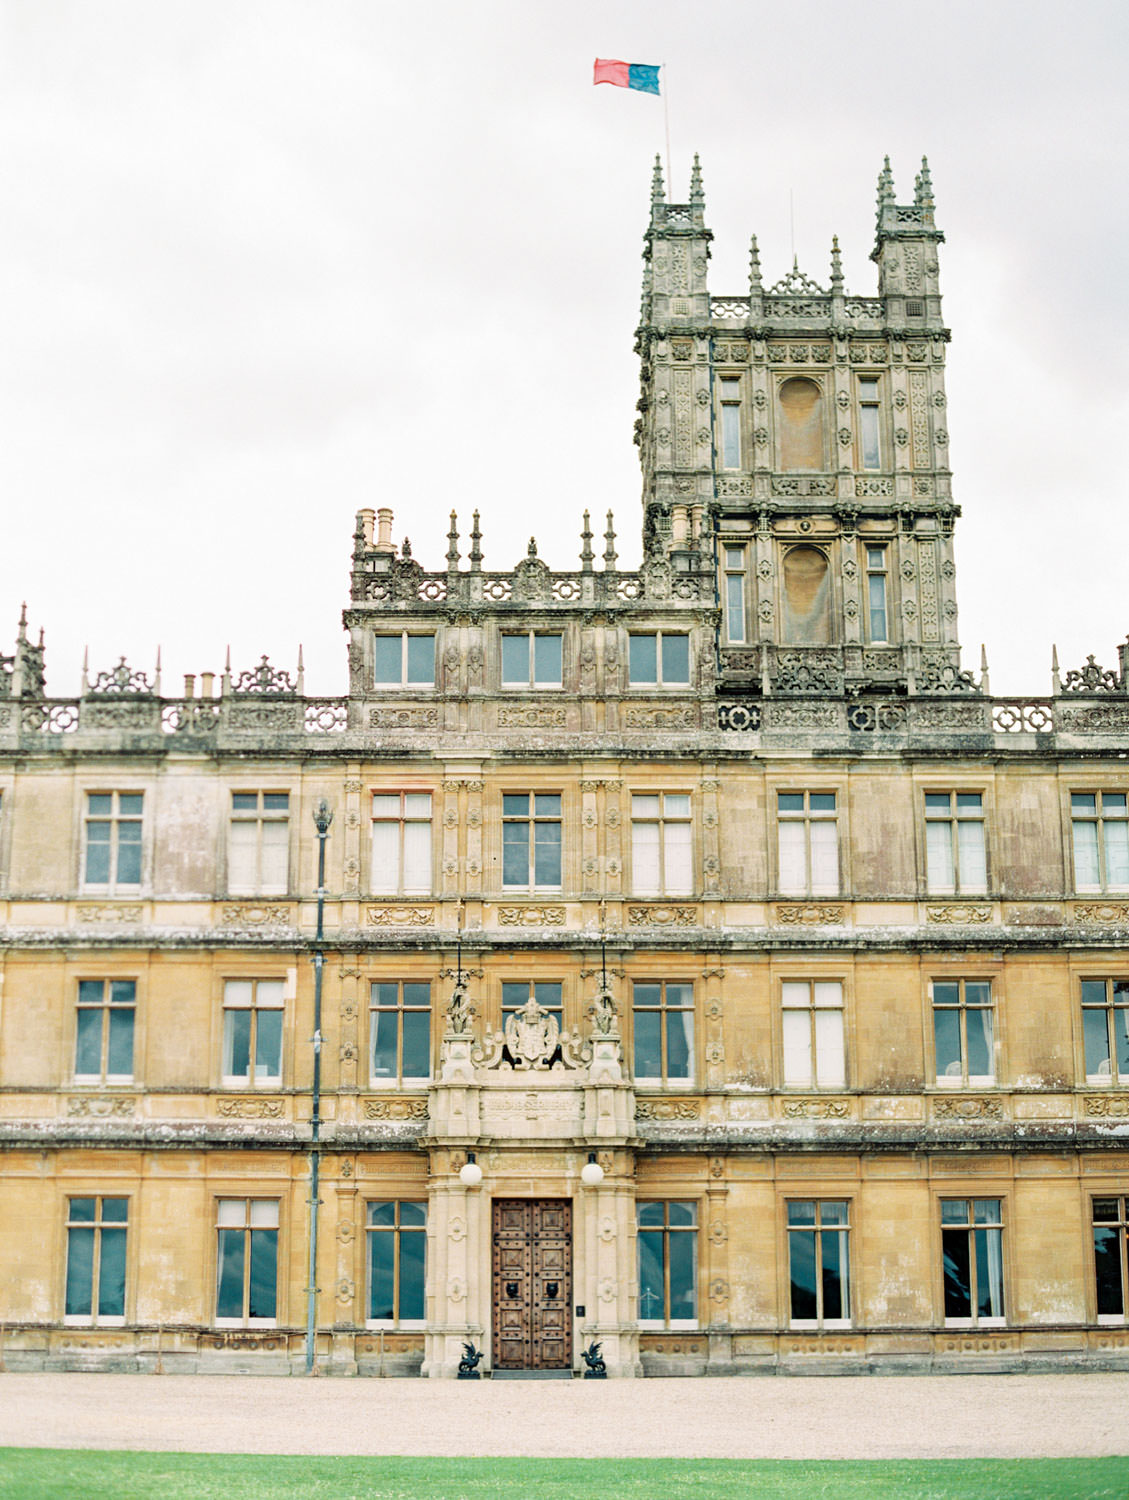 Downton Abbey house, Visiting Highclere Castle in England where Downton Abbey is filmed, Cavin Elizabeth Photography